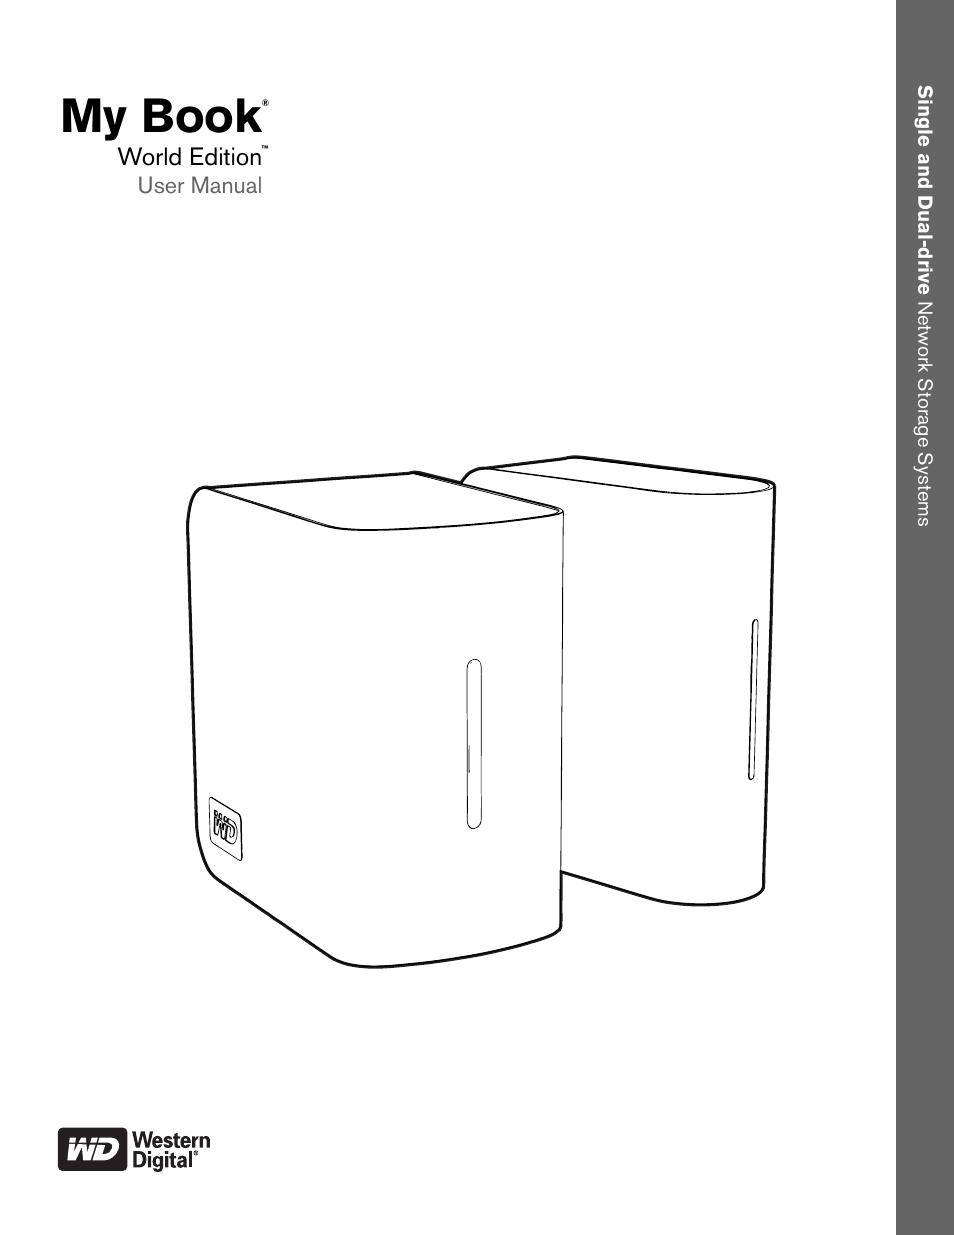 Western Digital My Book World Edition (white light) User